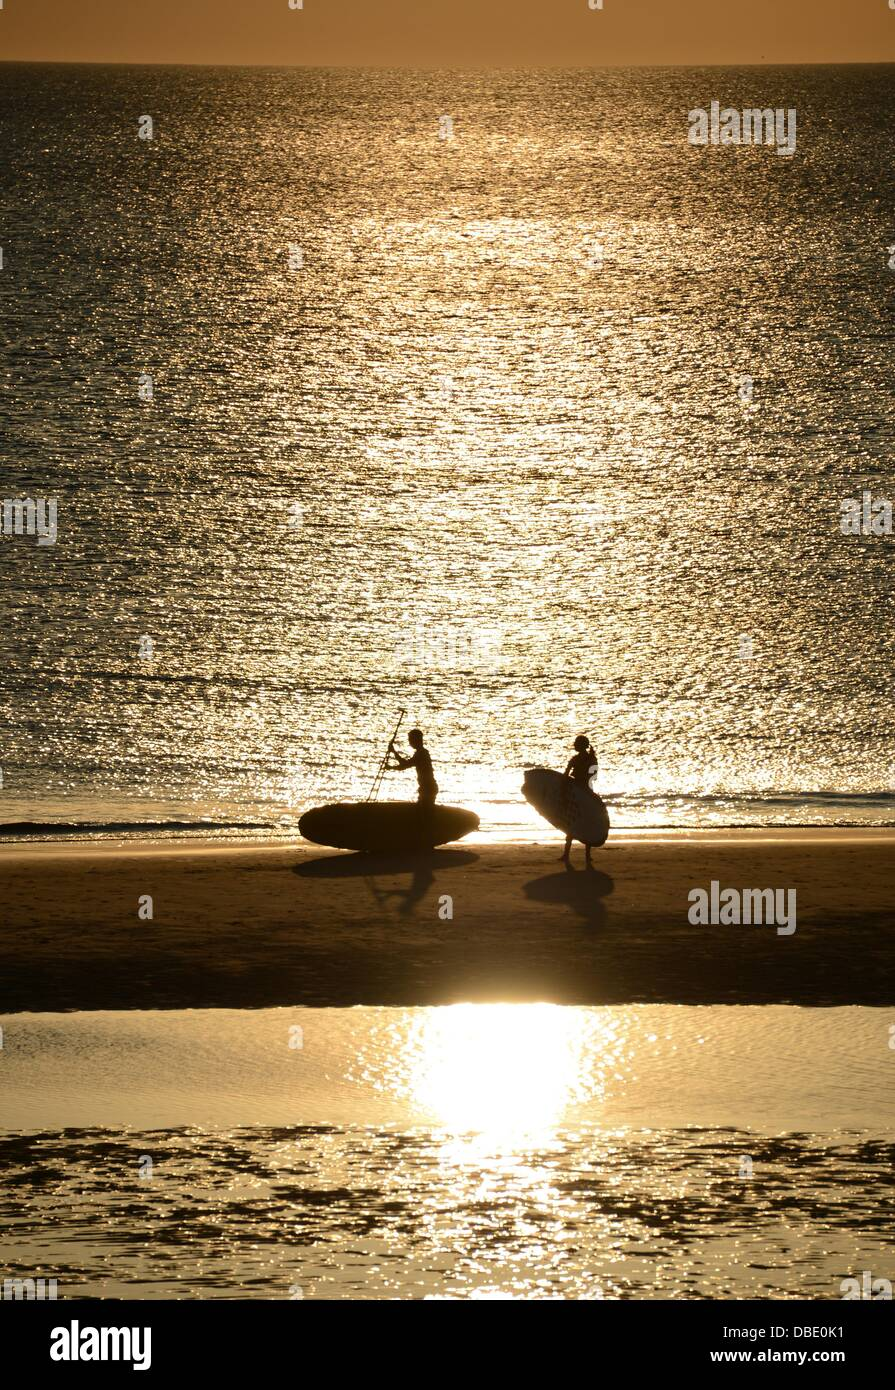 Surfers get out of the water and walk along the beach in the light of the setting sun at the beach of Westerland - Stock Image